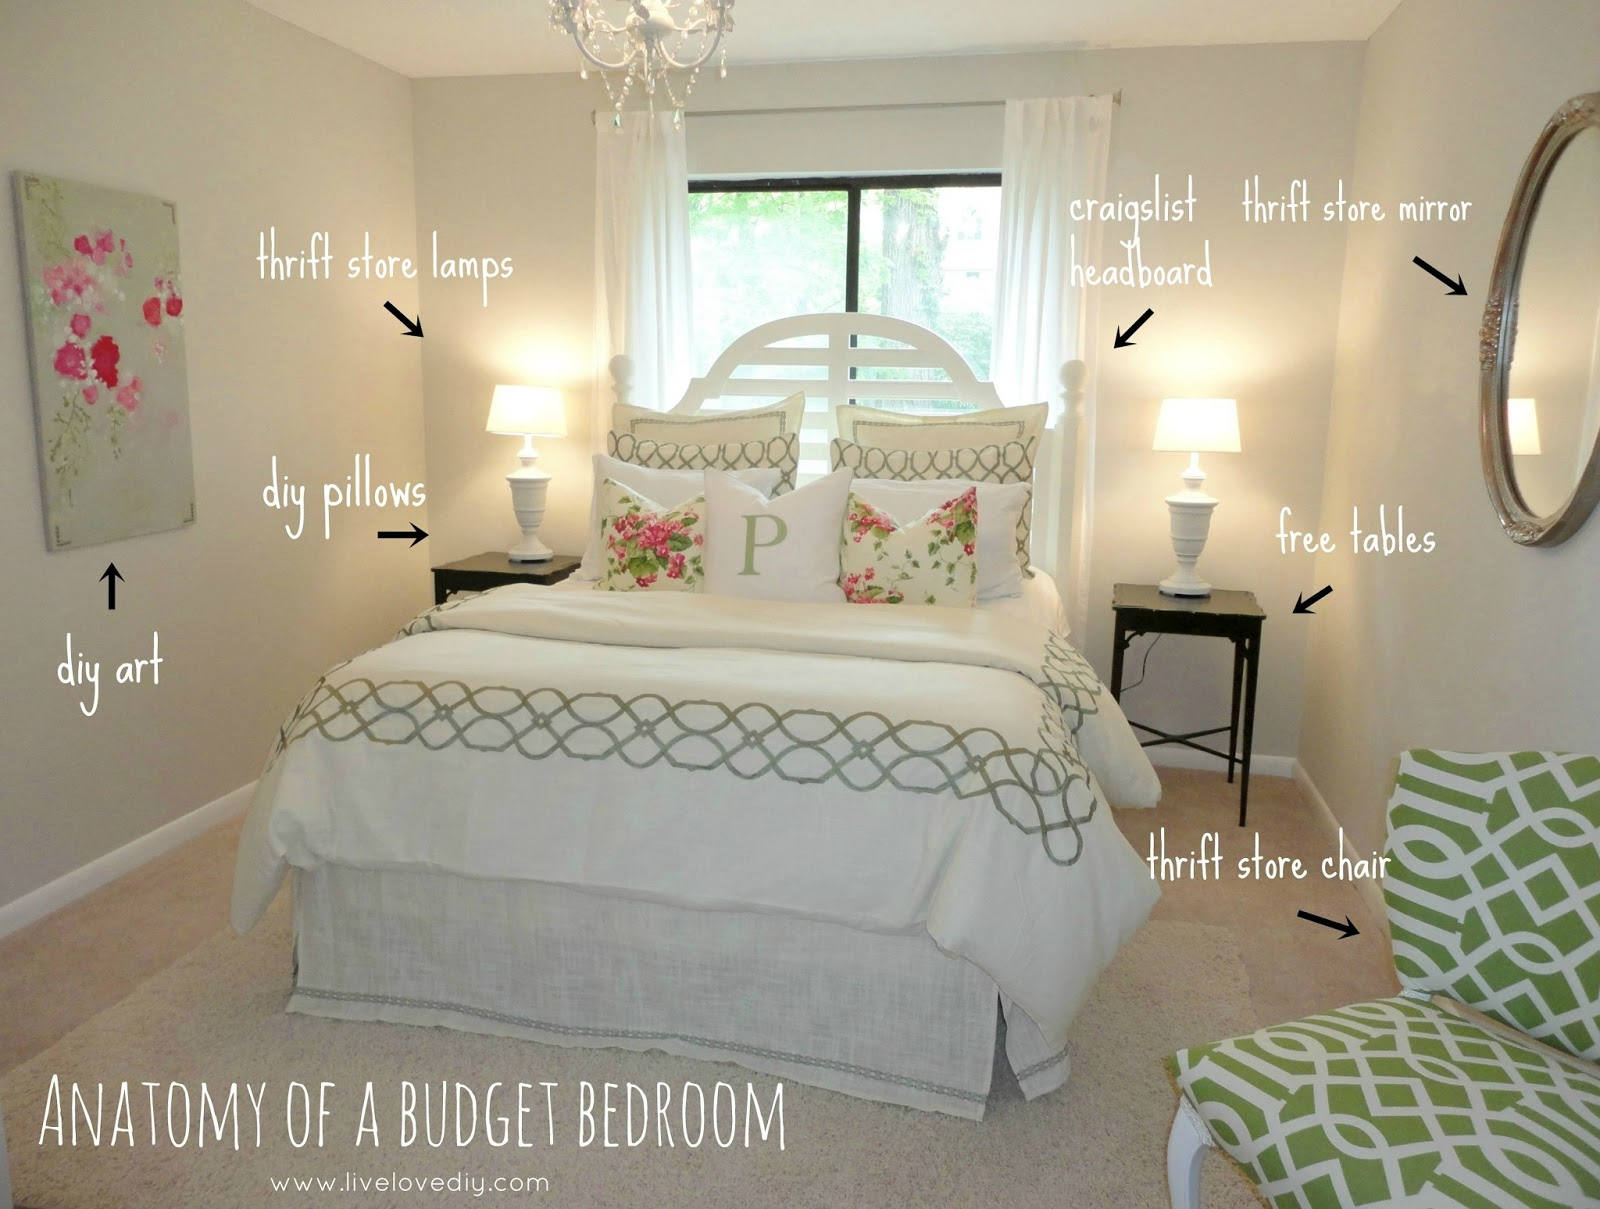 Nice Tons Of Thrifty Ideas For Decorating Bedrooms With Secondhand Items |  LiveLoveDIY